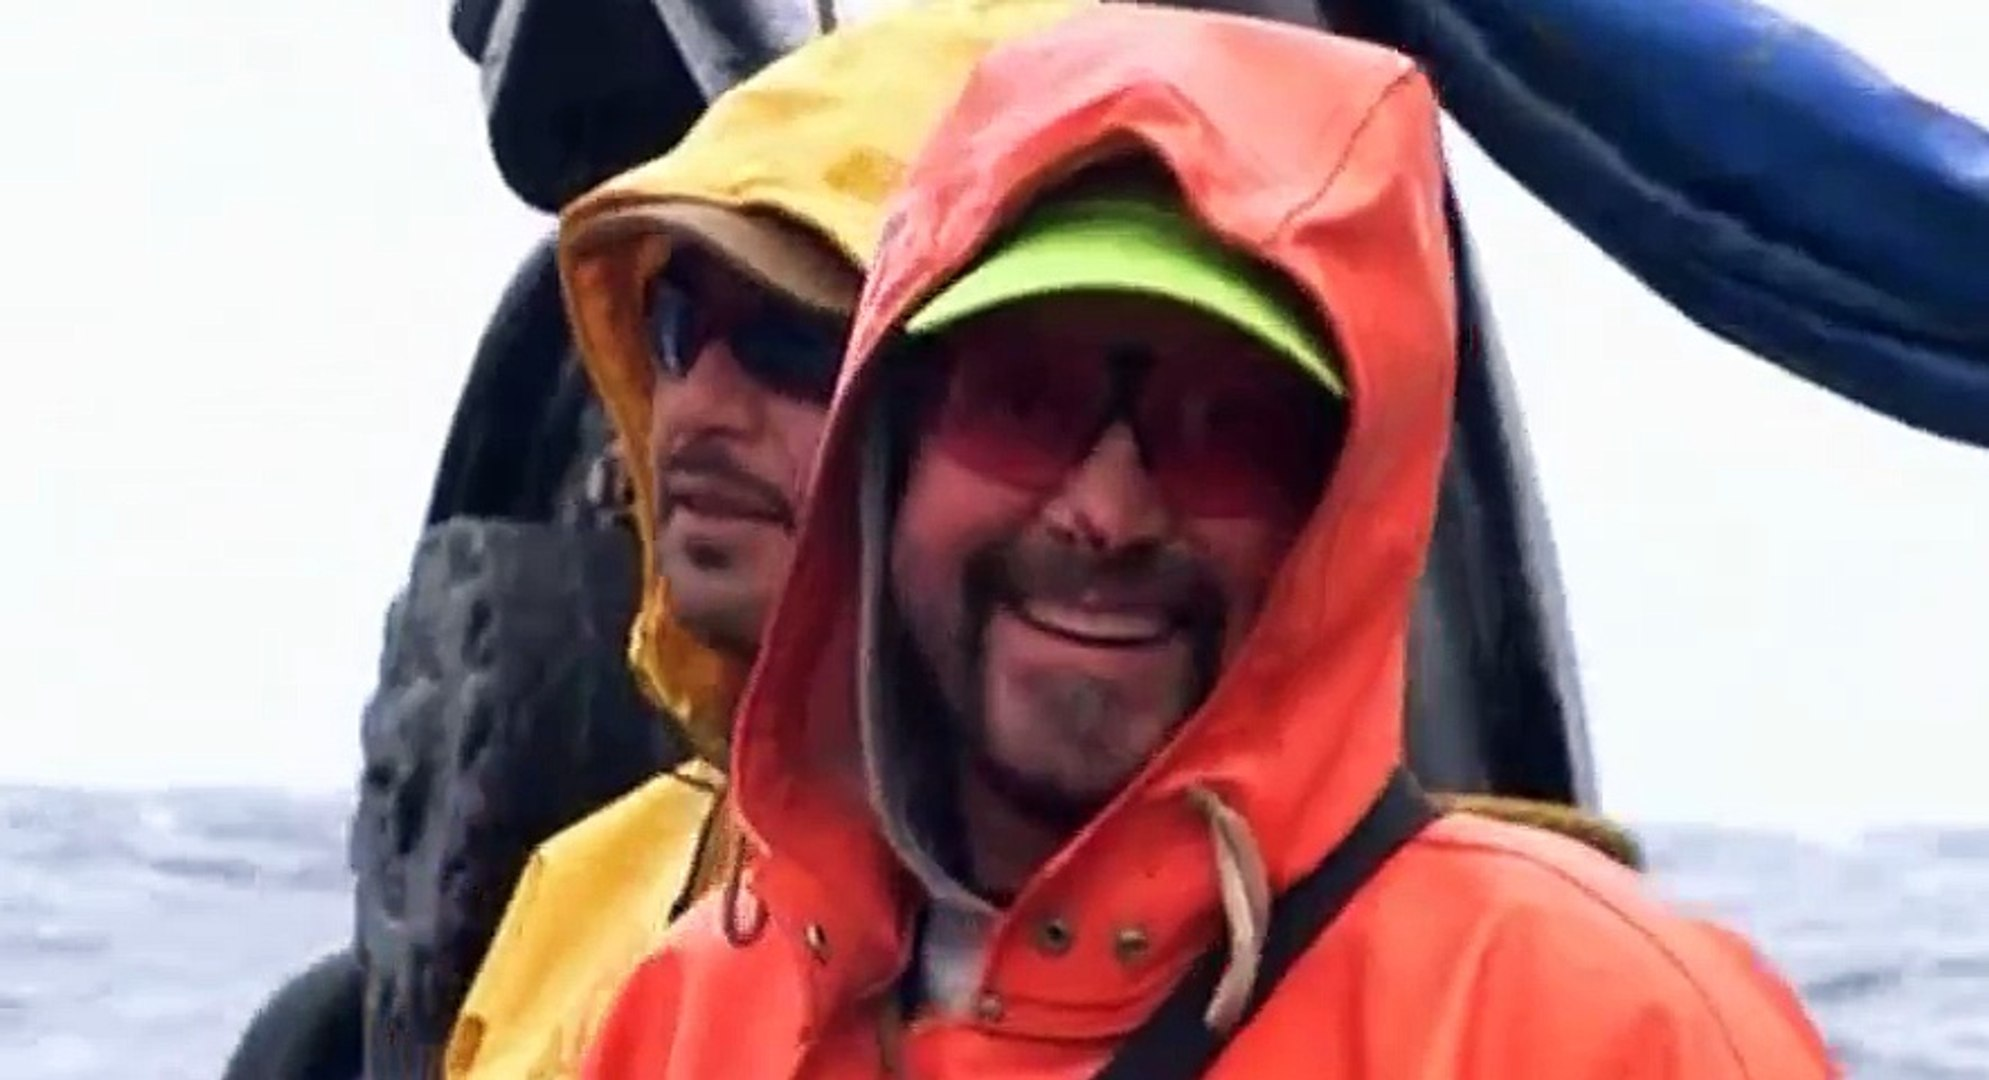 Deadliest Catch Crab Fishing in Alaska S05 - Ep02 Red Skies in the Morning HD Watch